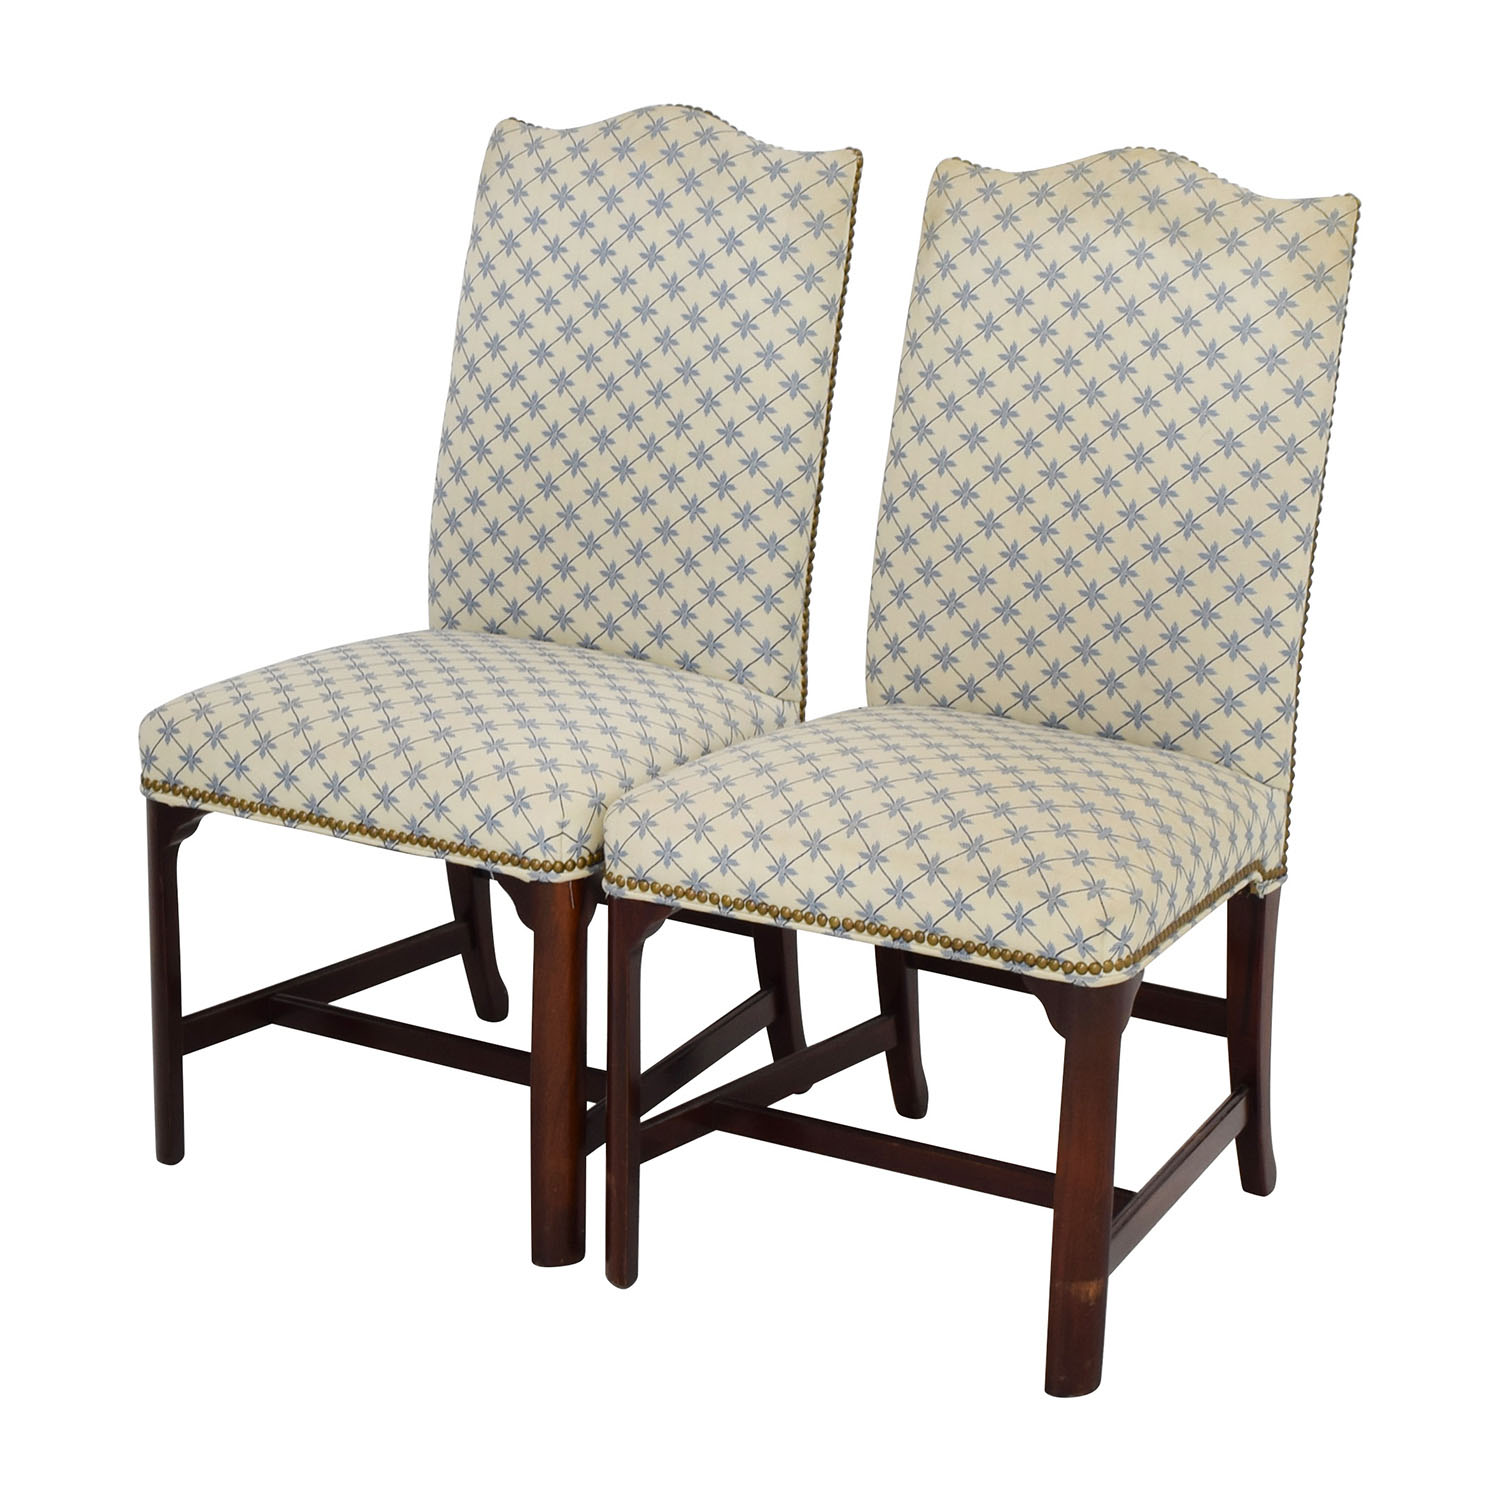 Occasional Chairs Cheap 88 Off Hickory Chair Hickory Chair Bespoke Upholstered